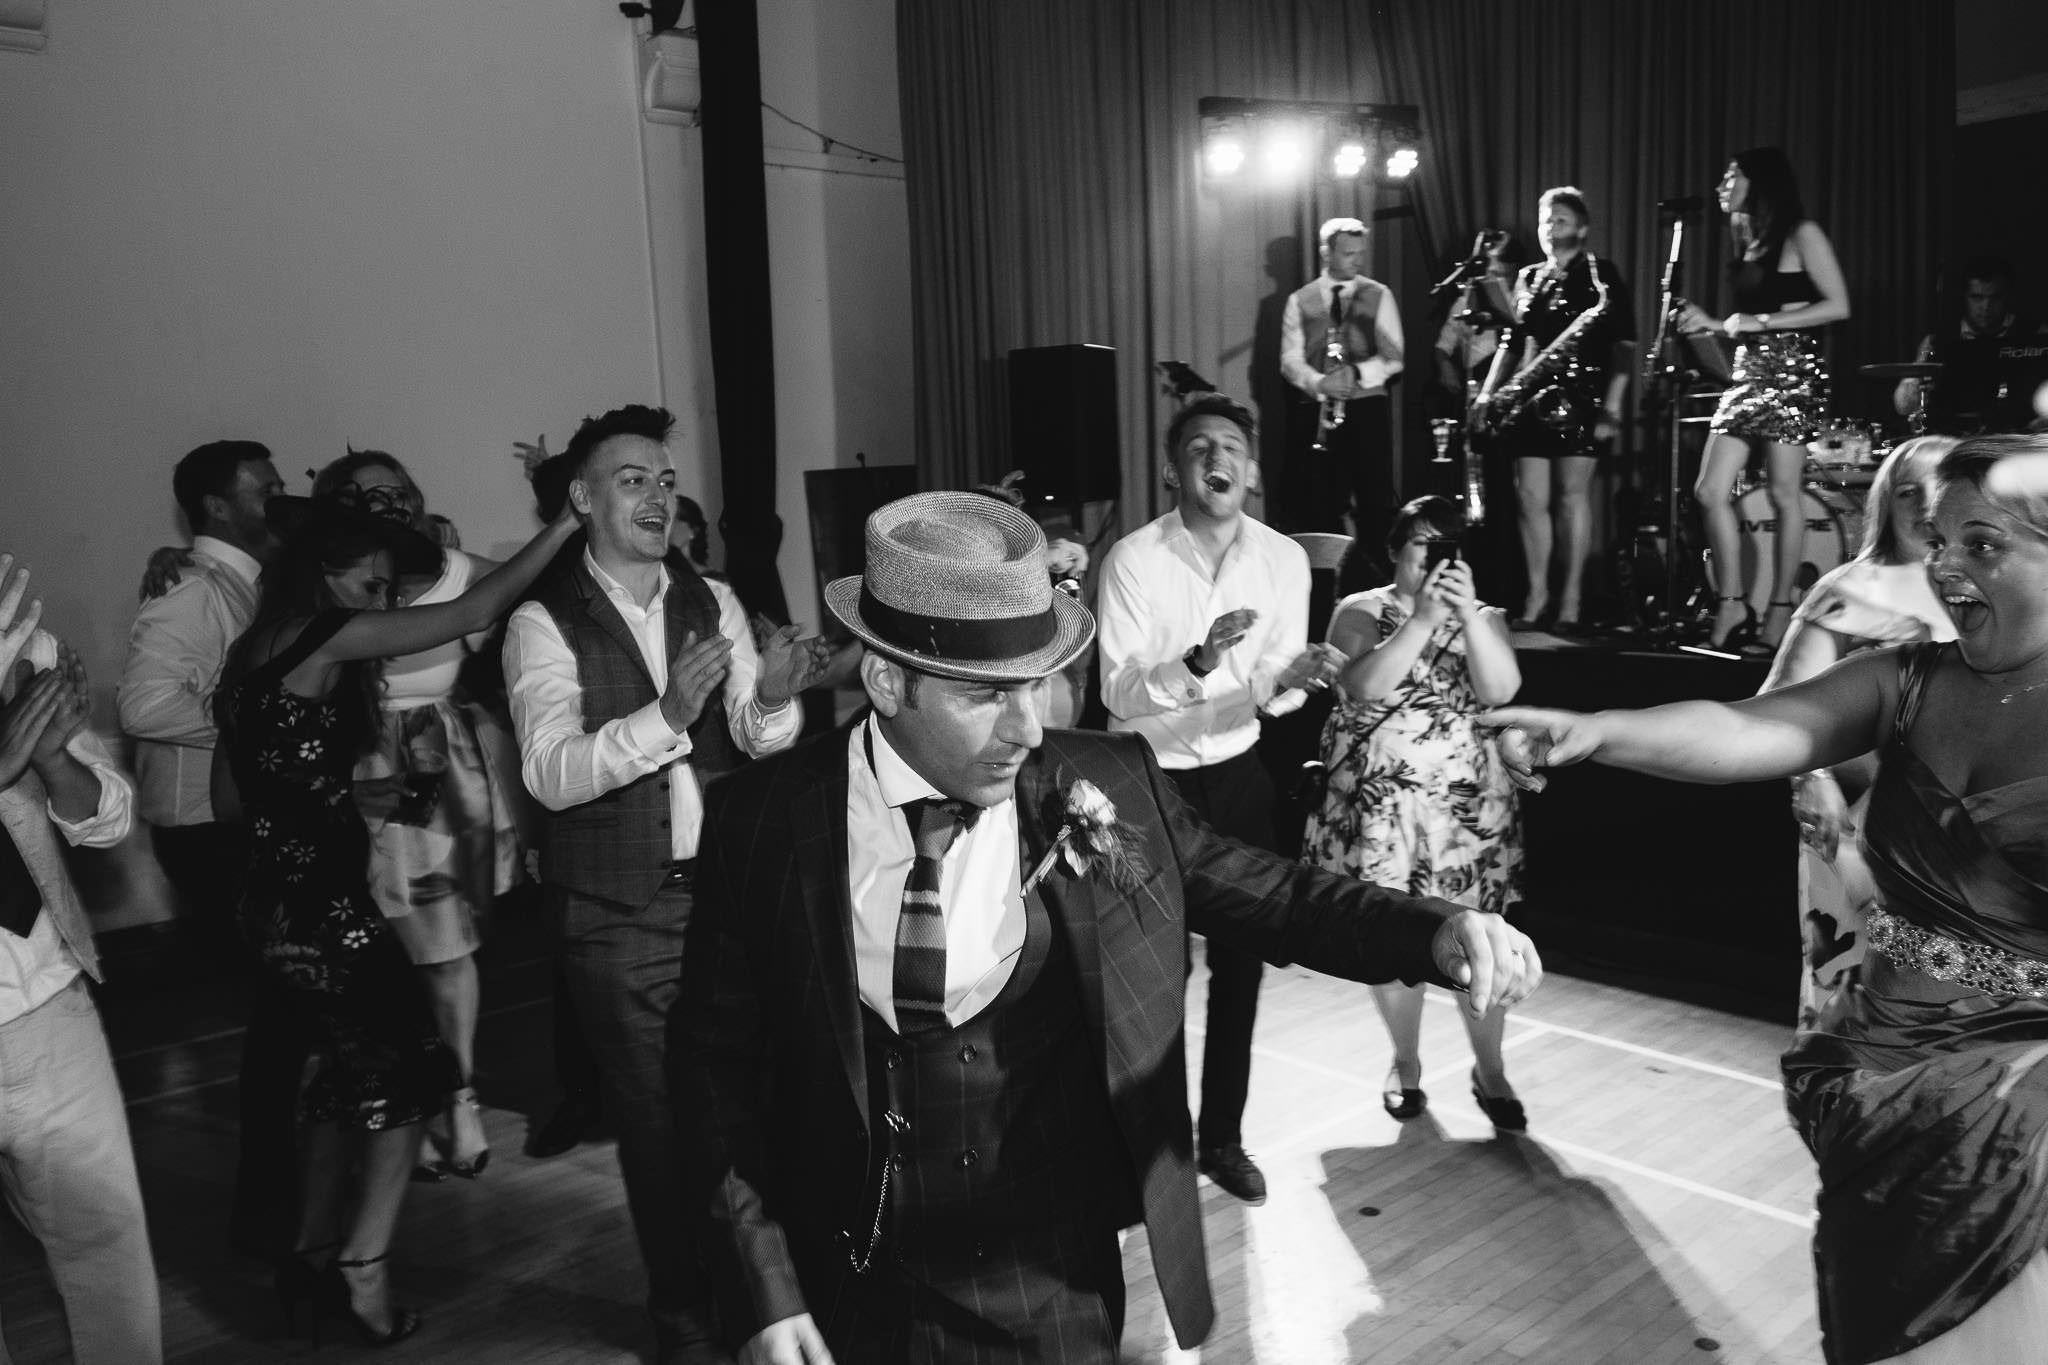 A black and white photo of the groom dancing while wearing a hat